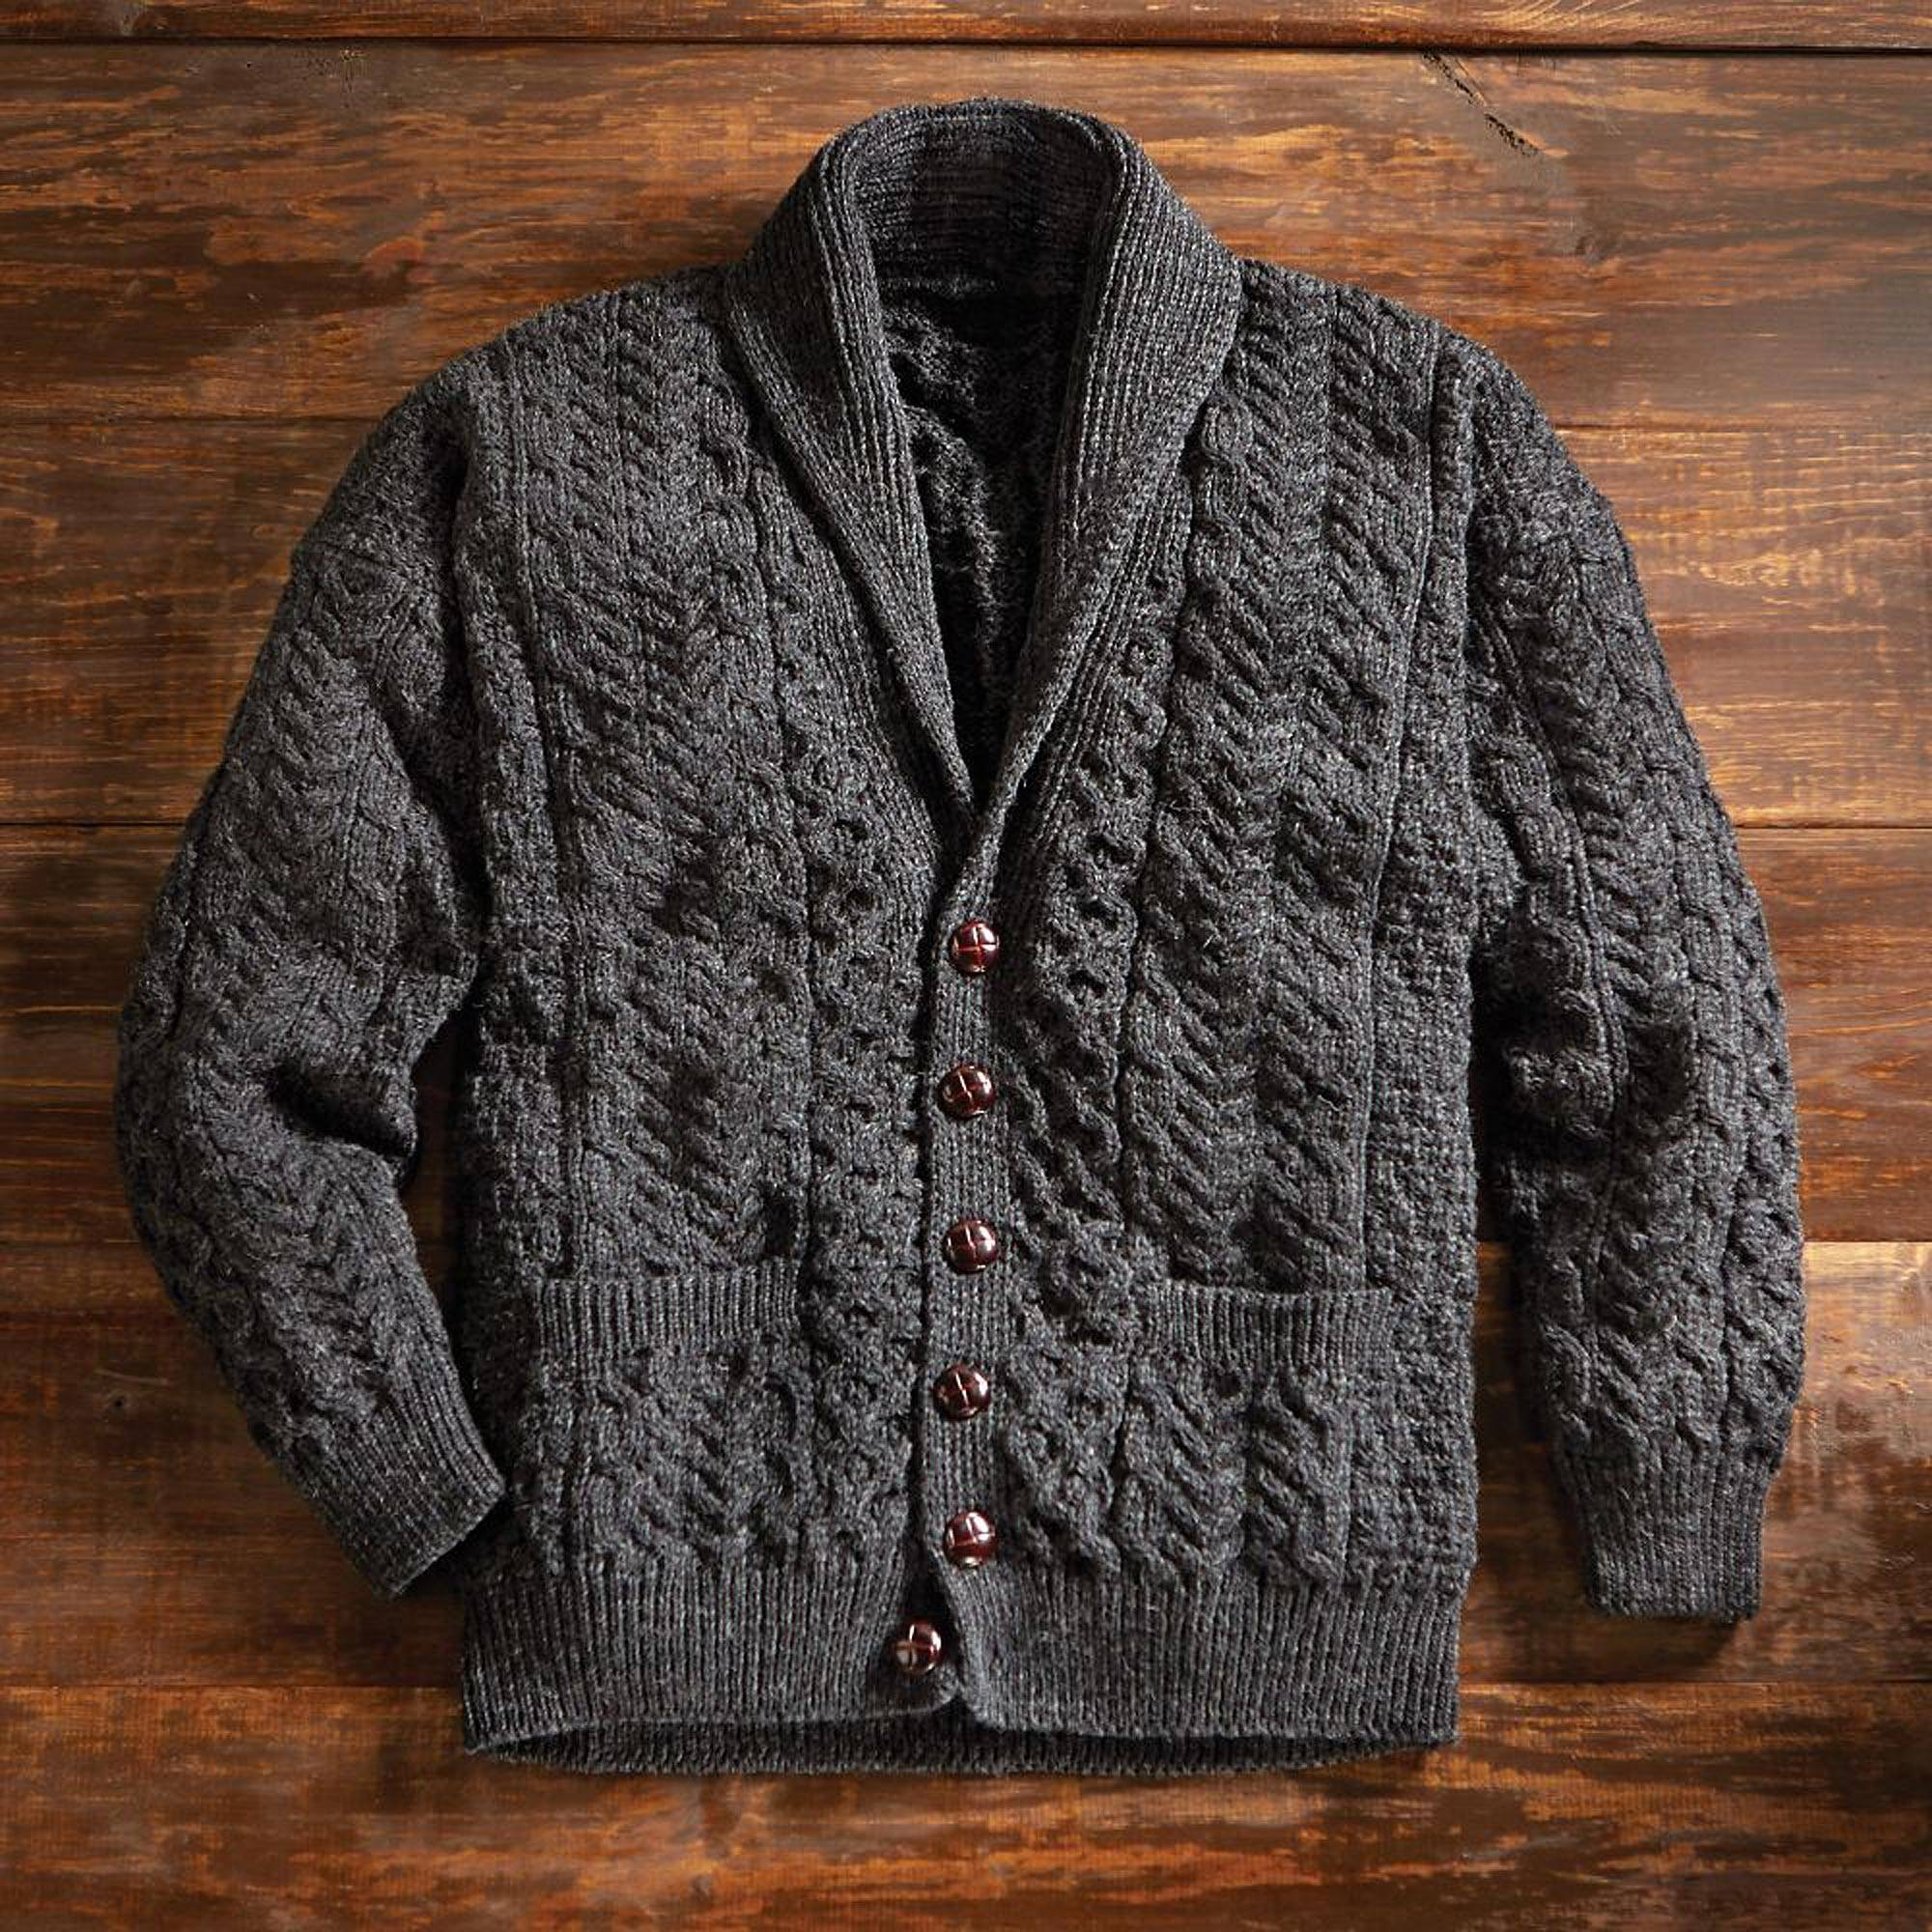 Unique Sweater Gifts for Men at NOVICA